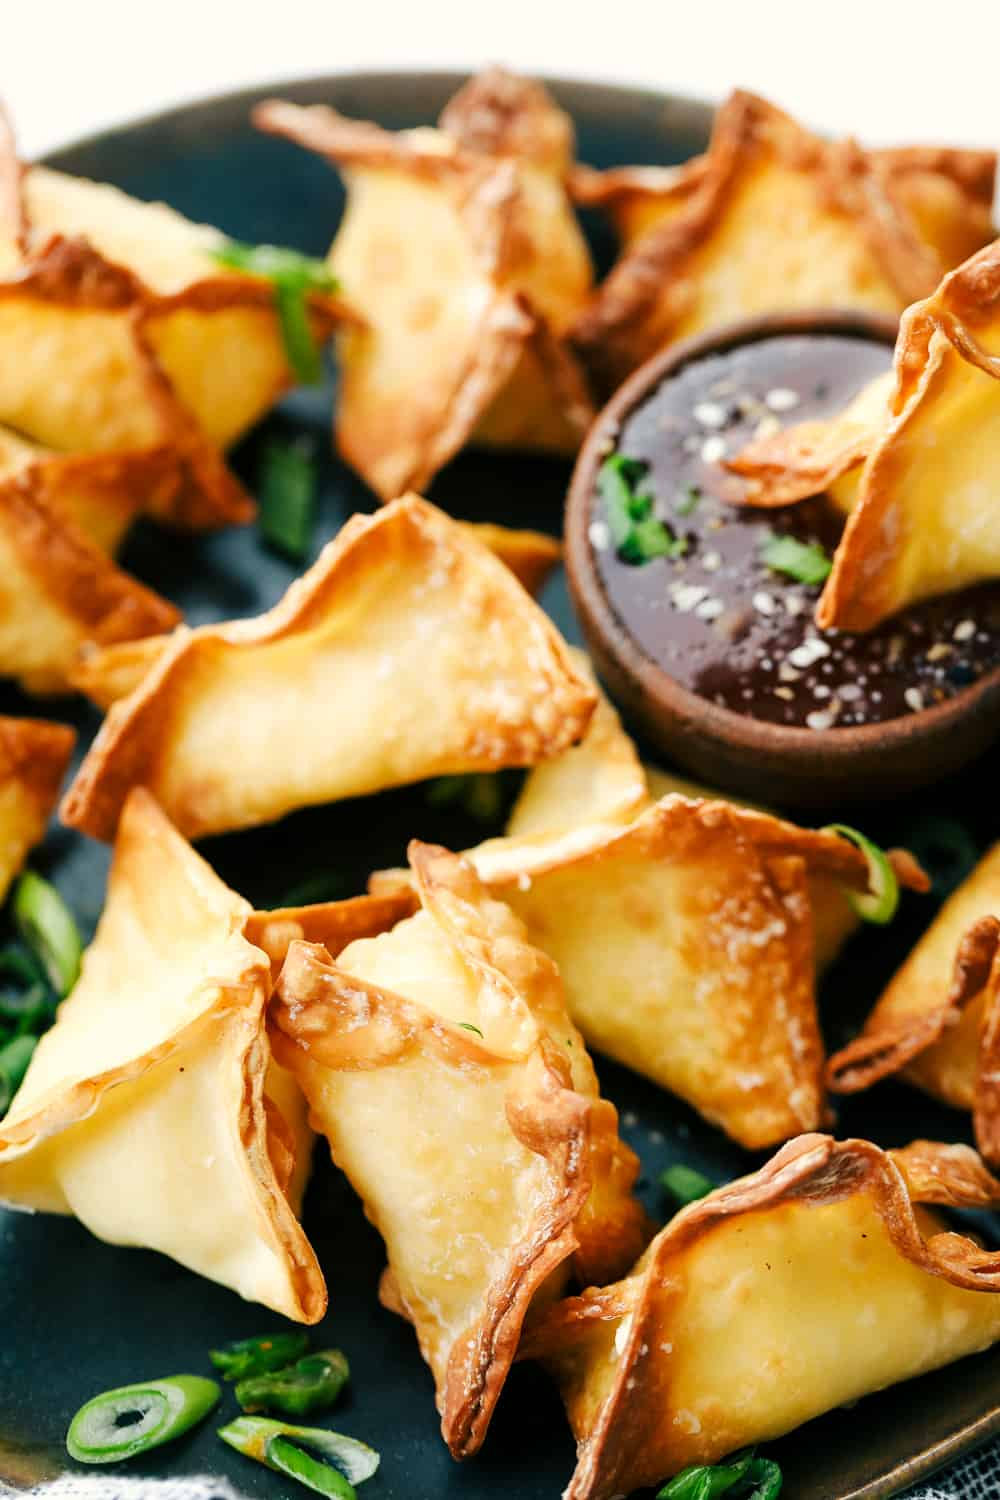 Perfectly air fried wontons on a plate with dipping sauce.